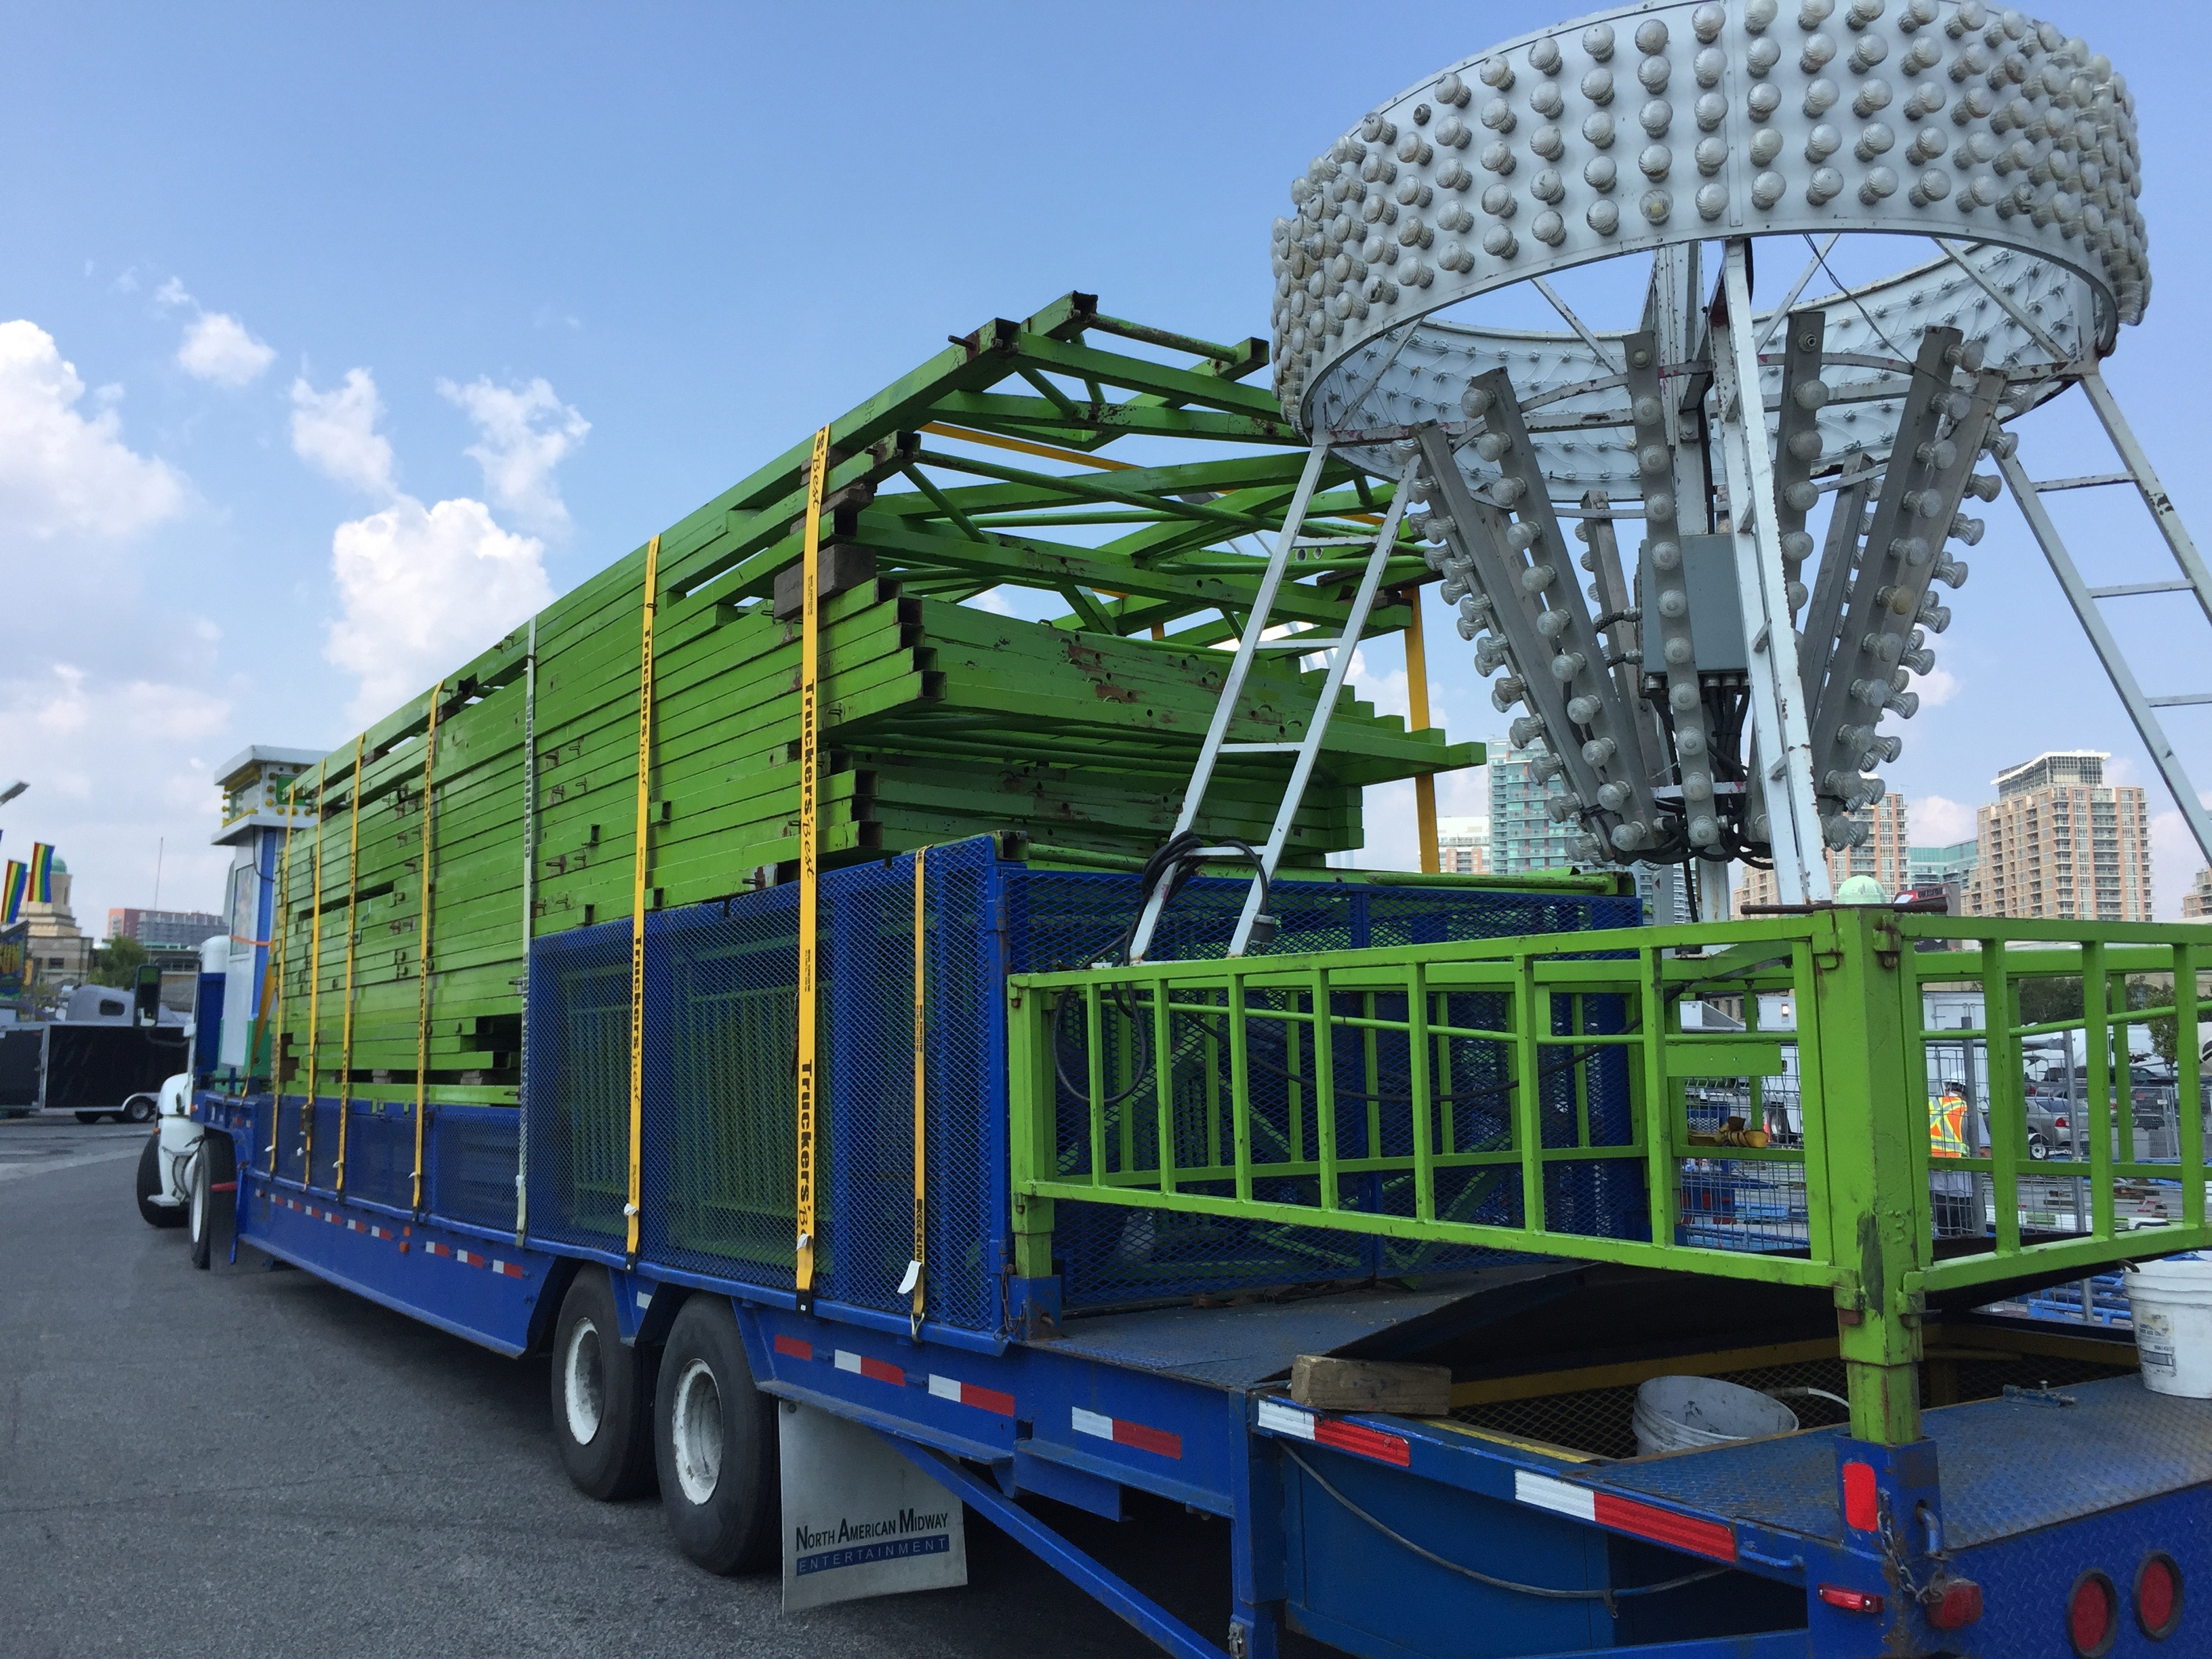 Roller coaster parts on trailer waiting to be constructed